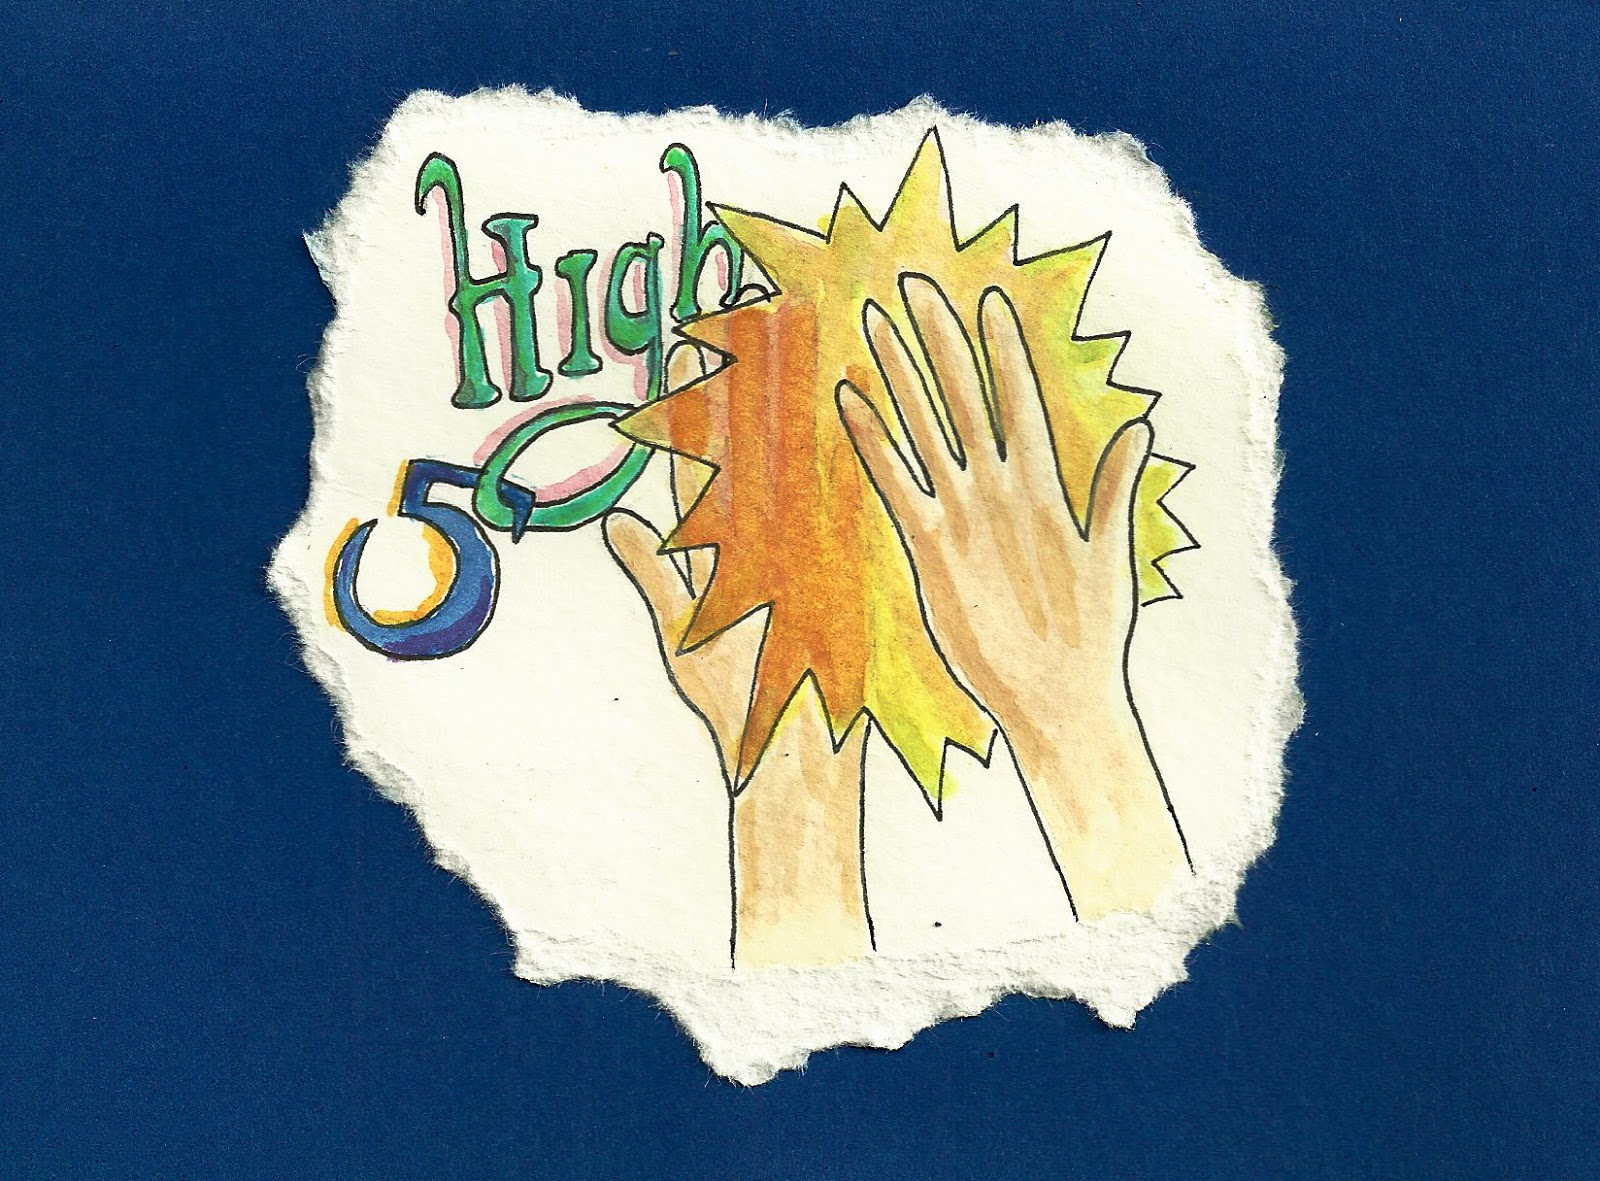 Debbie dots greeting card blog new job cards sofi is a hand therapist who recently accepted a new job in vail this card features a celebratory watercolor high five m4hsunfo